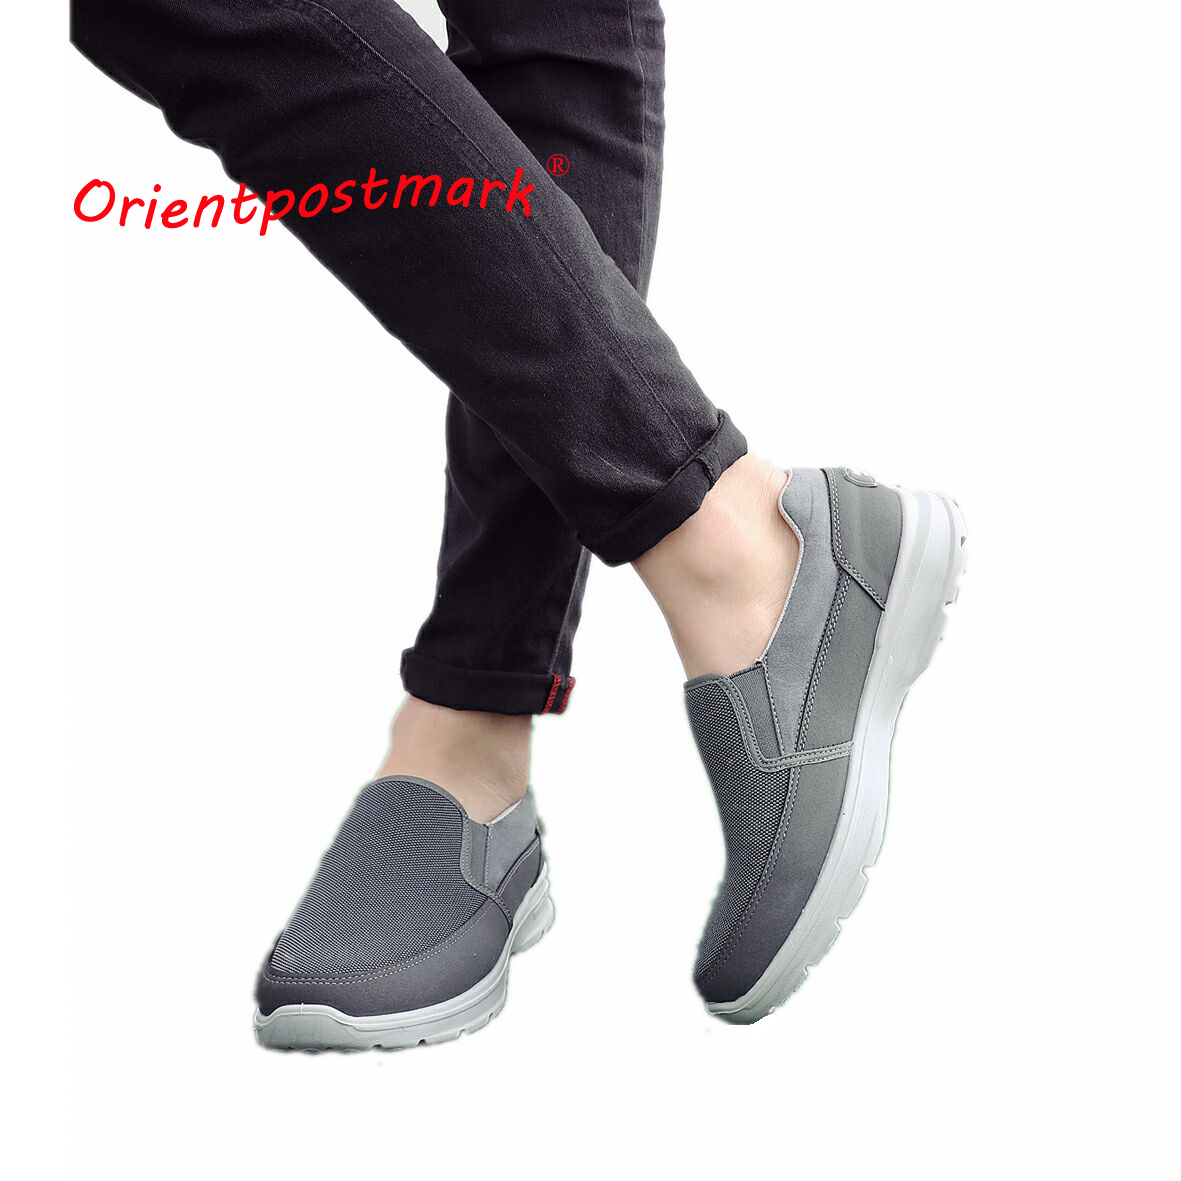 OrientPostMark Mens Shoes Seniors Casual Shoes Elderly Walking Flat Shoes Soft Comfortable Loose Driving Shoes Canvas Breathable e lov women casual walking shoes graffiti aries horoscope canvas shoe low top flat oxford shoes for couples lovers